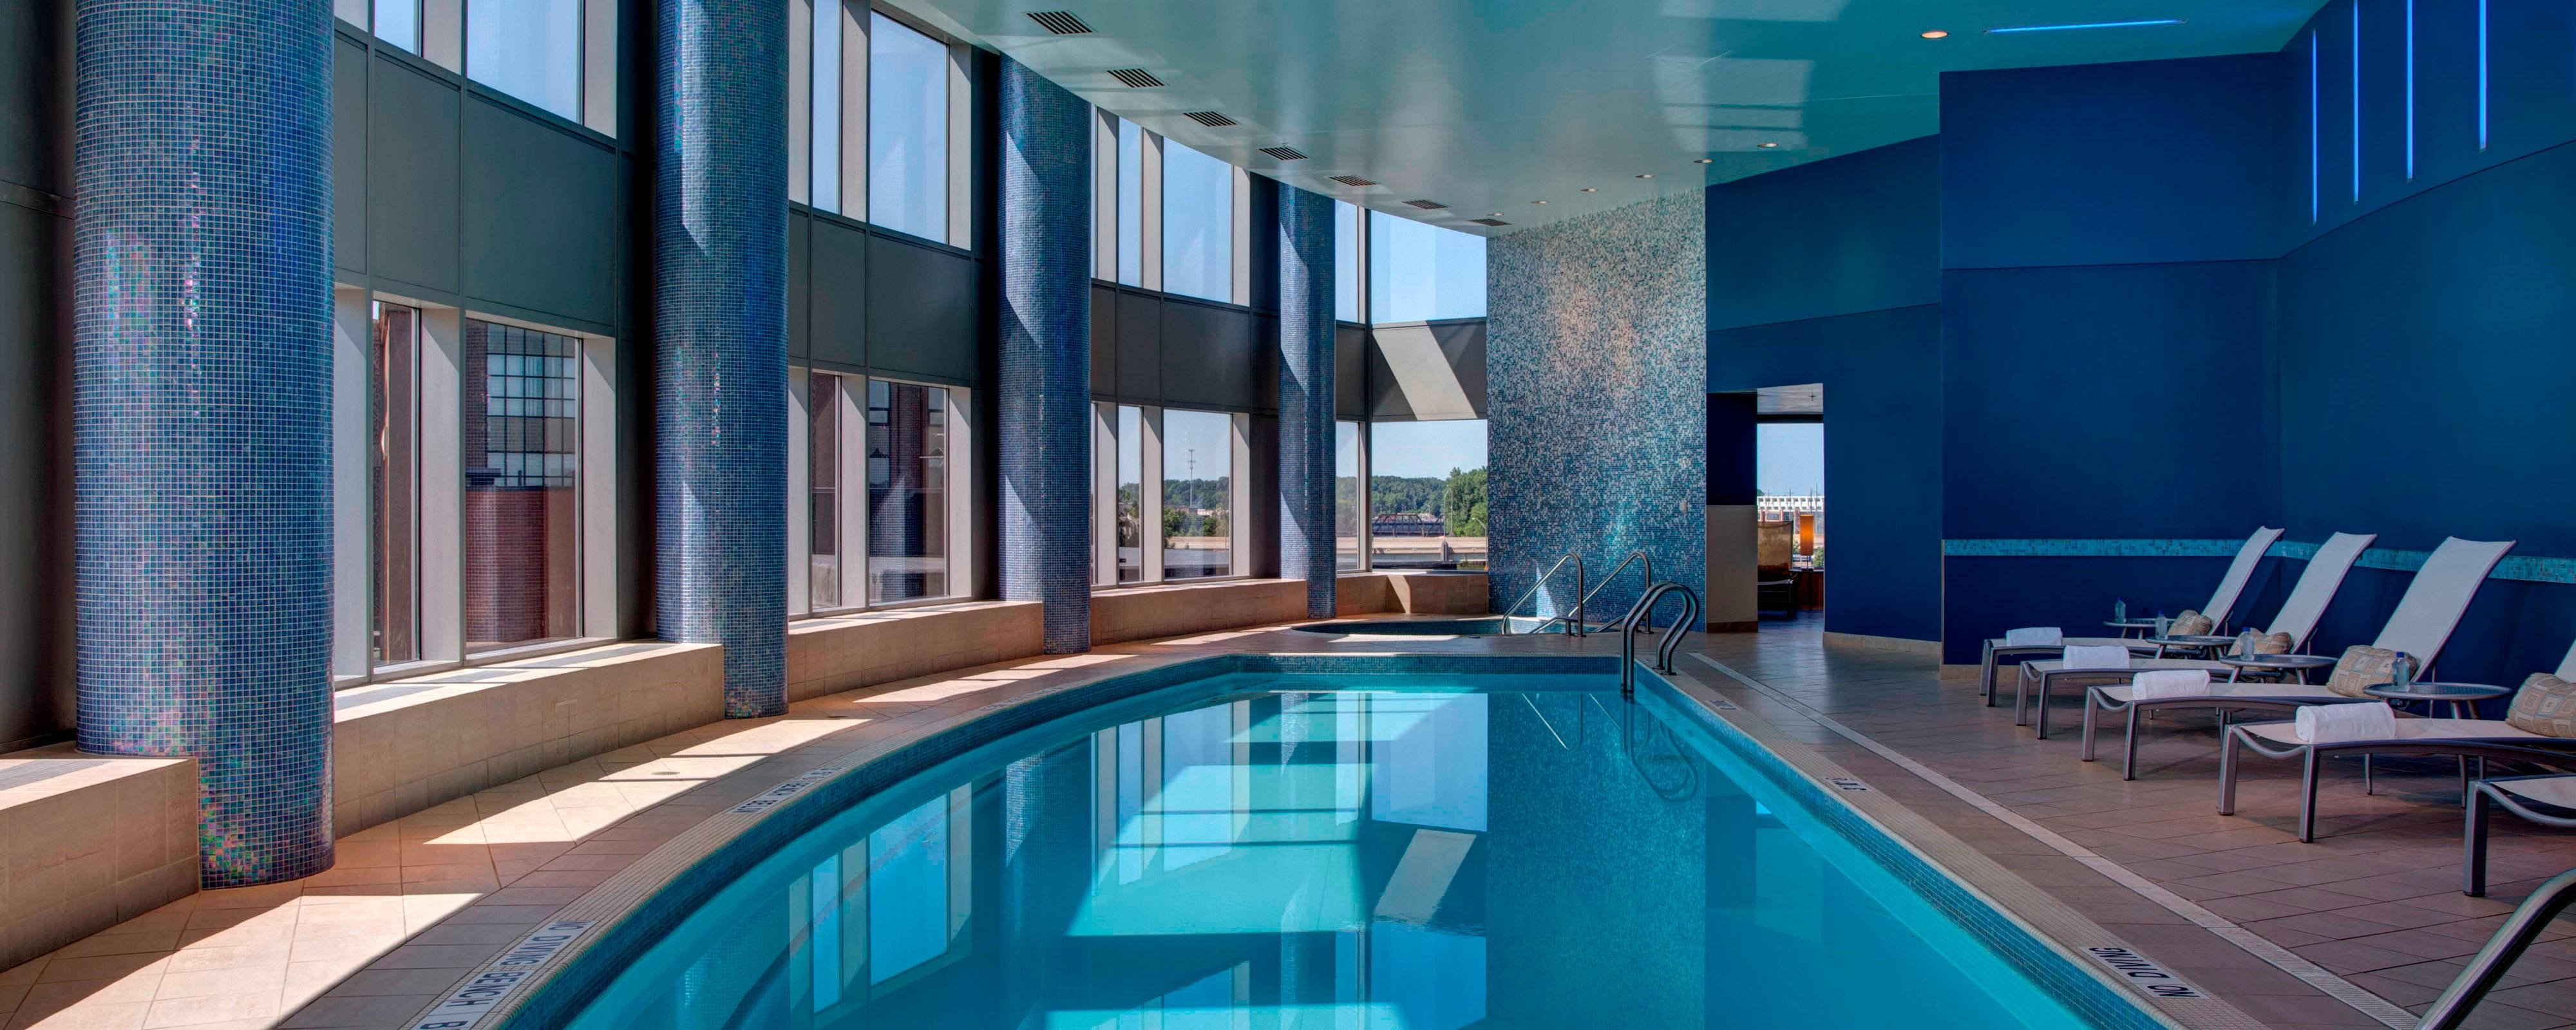 JW Marriott Grand Rapids Indoor Pool